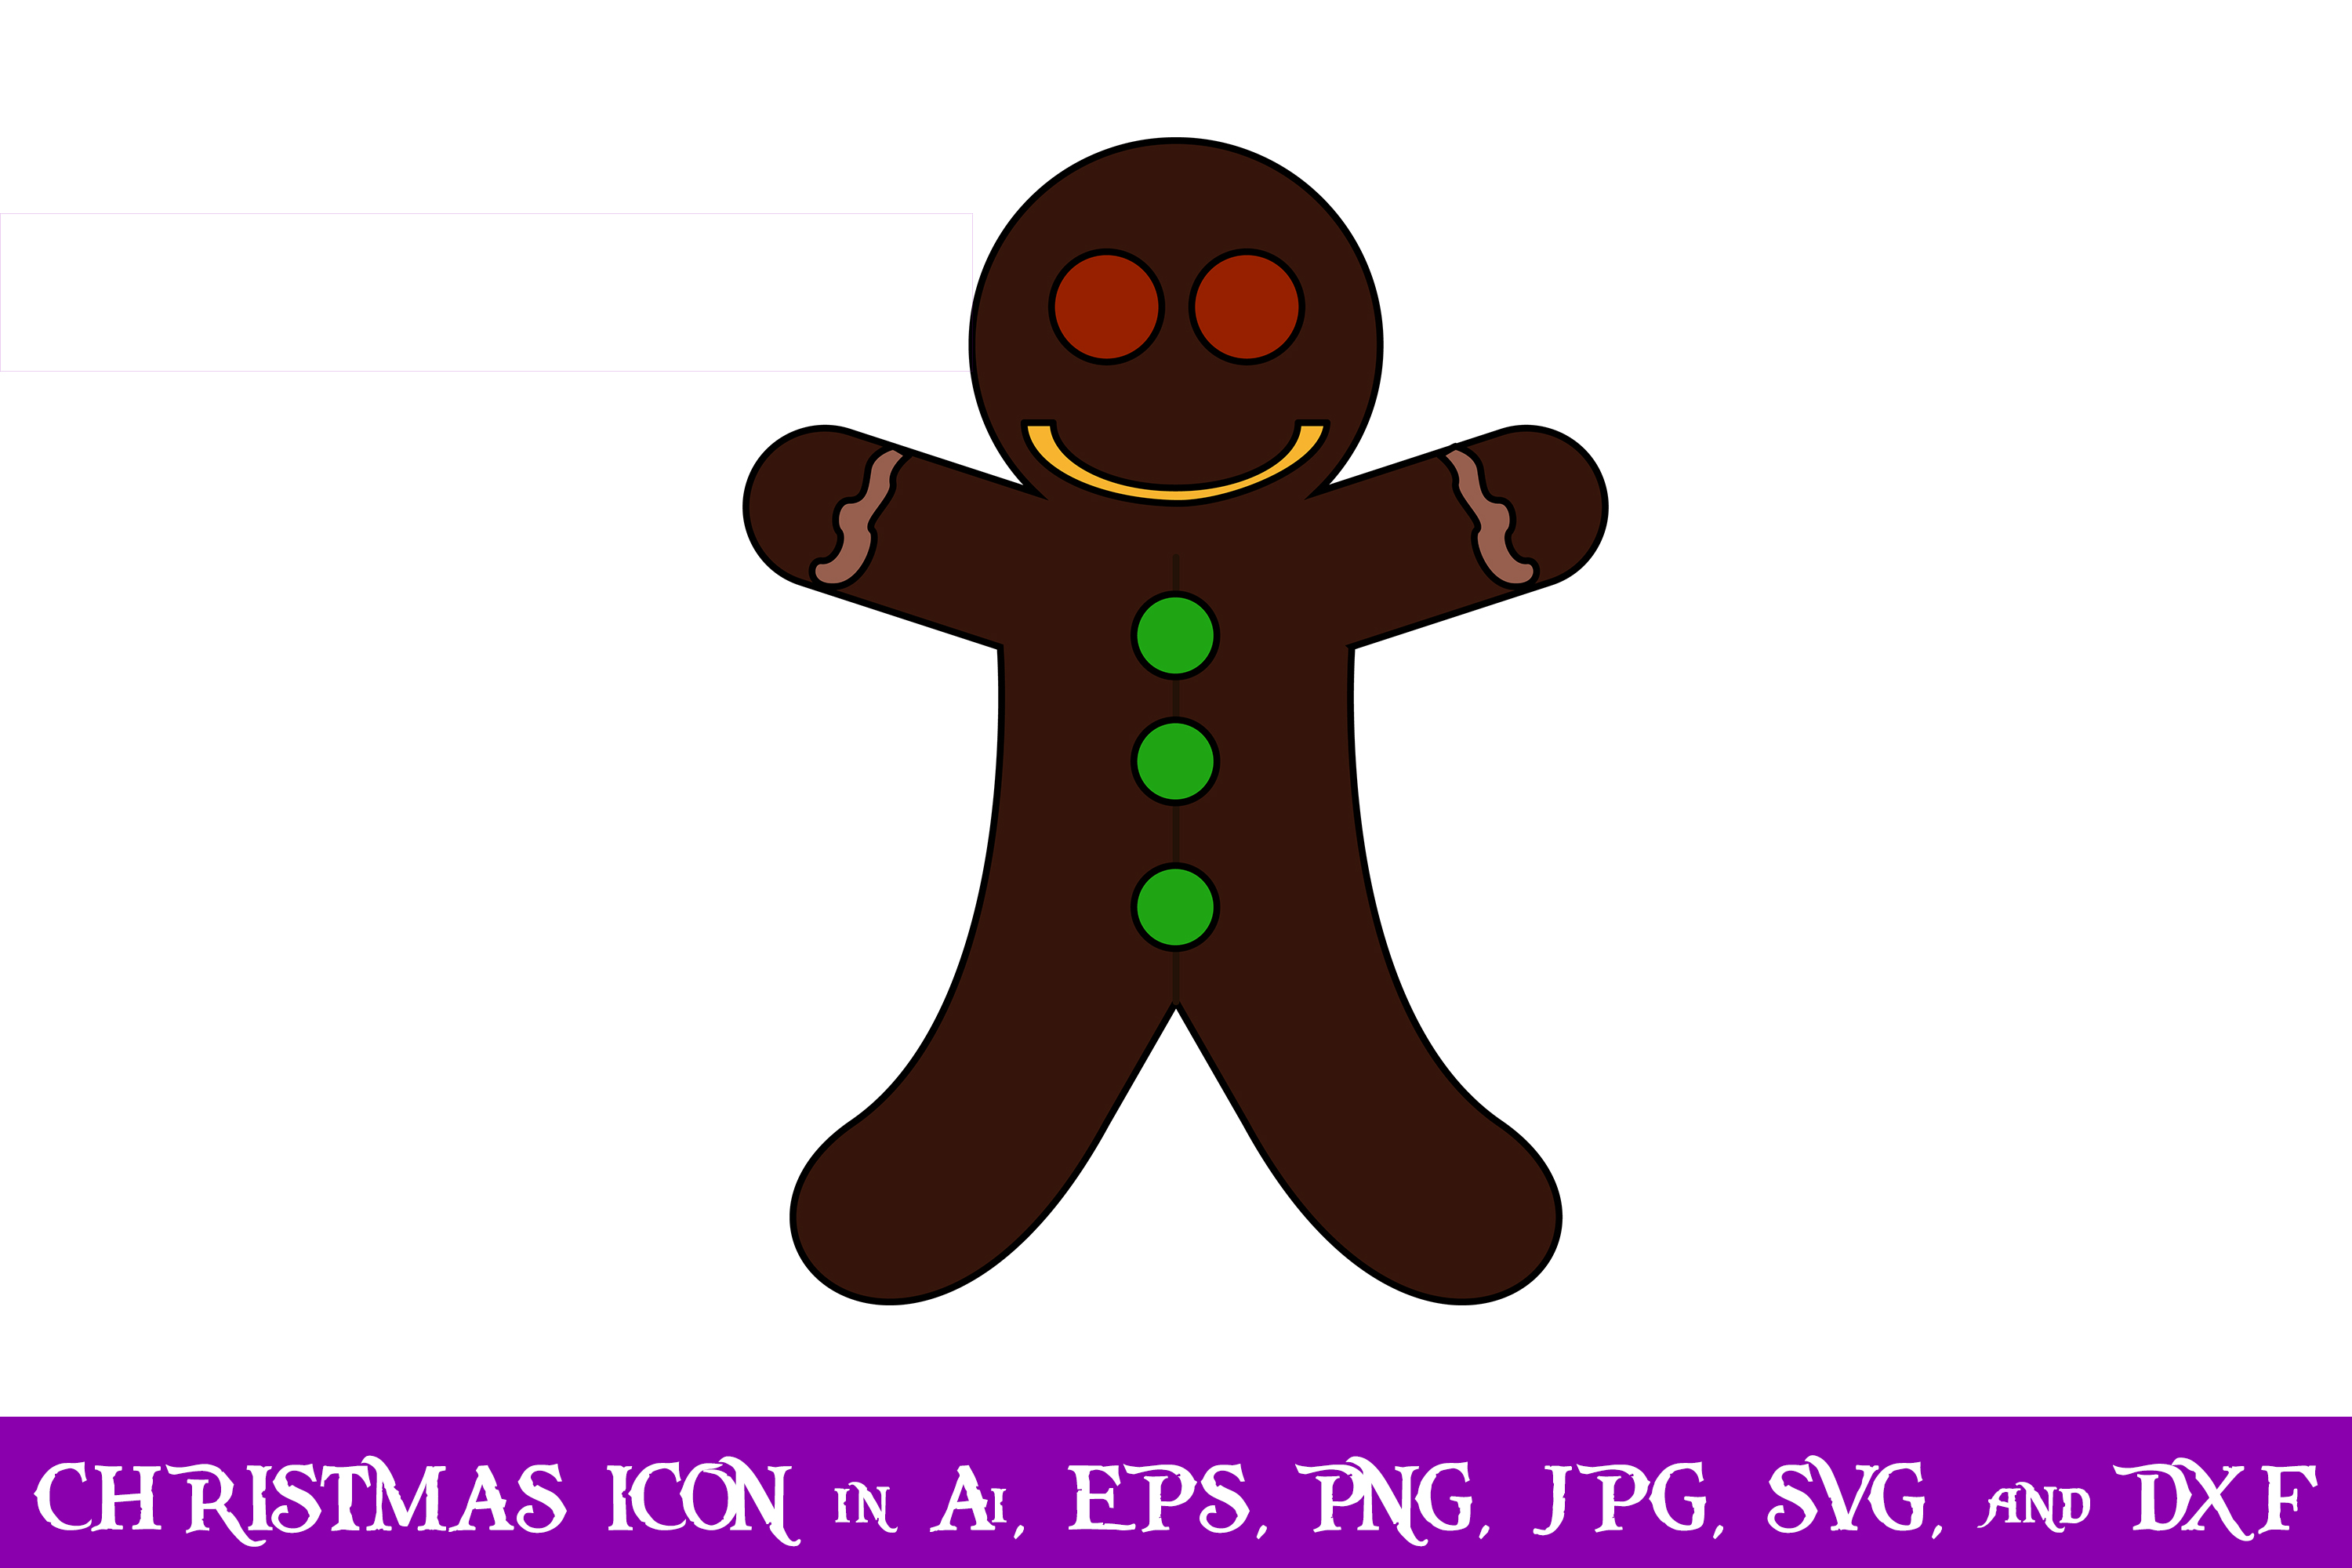 Download Free Gingerbread Christmas Icon Graphic By Purplespoonpirates for Cricut Explore, Silhouette and other cutting machines.